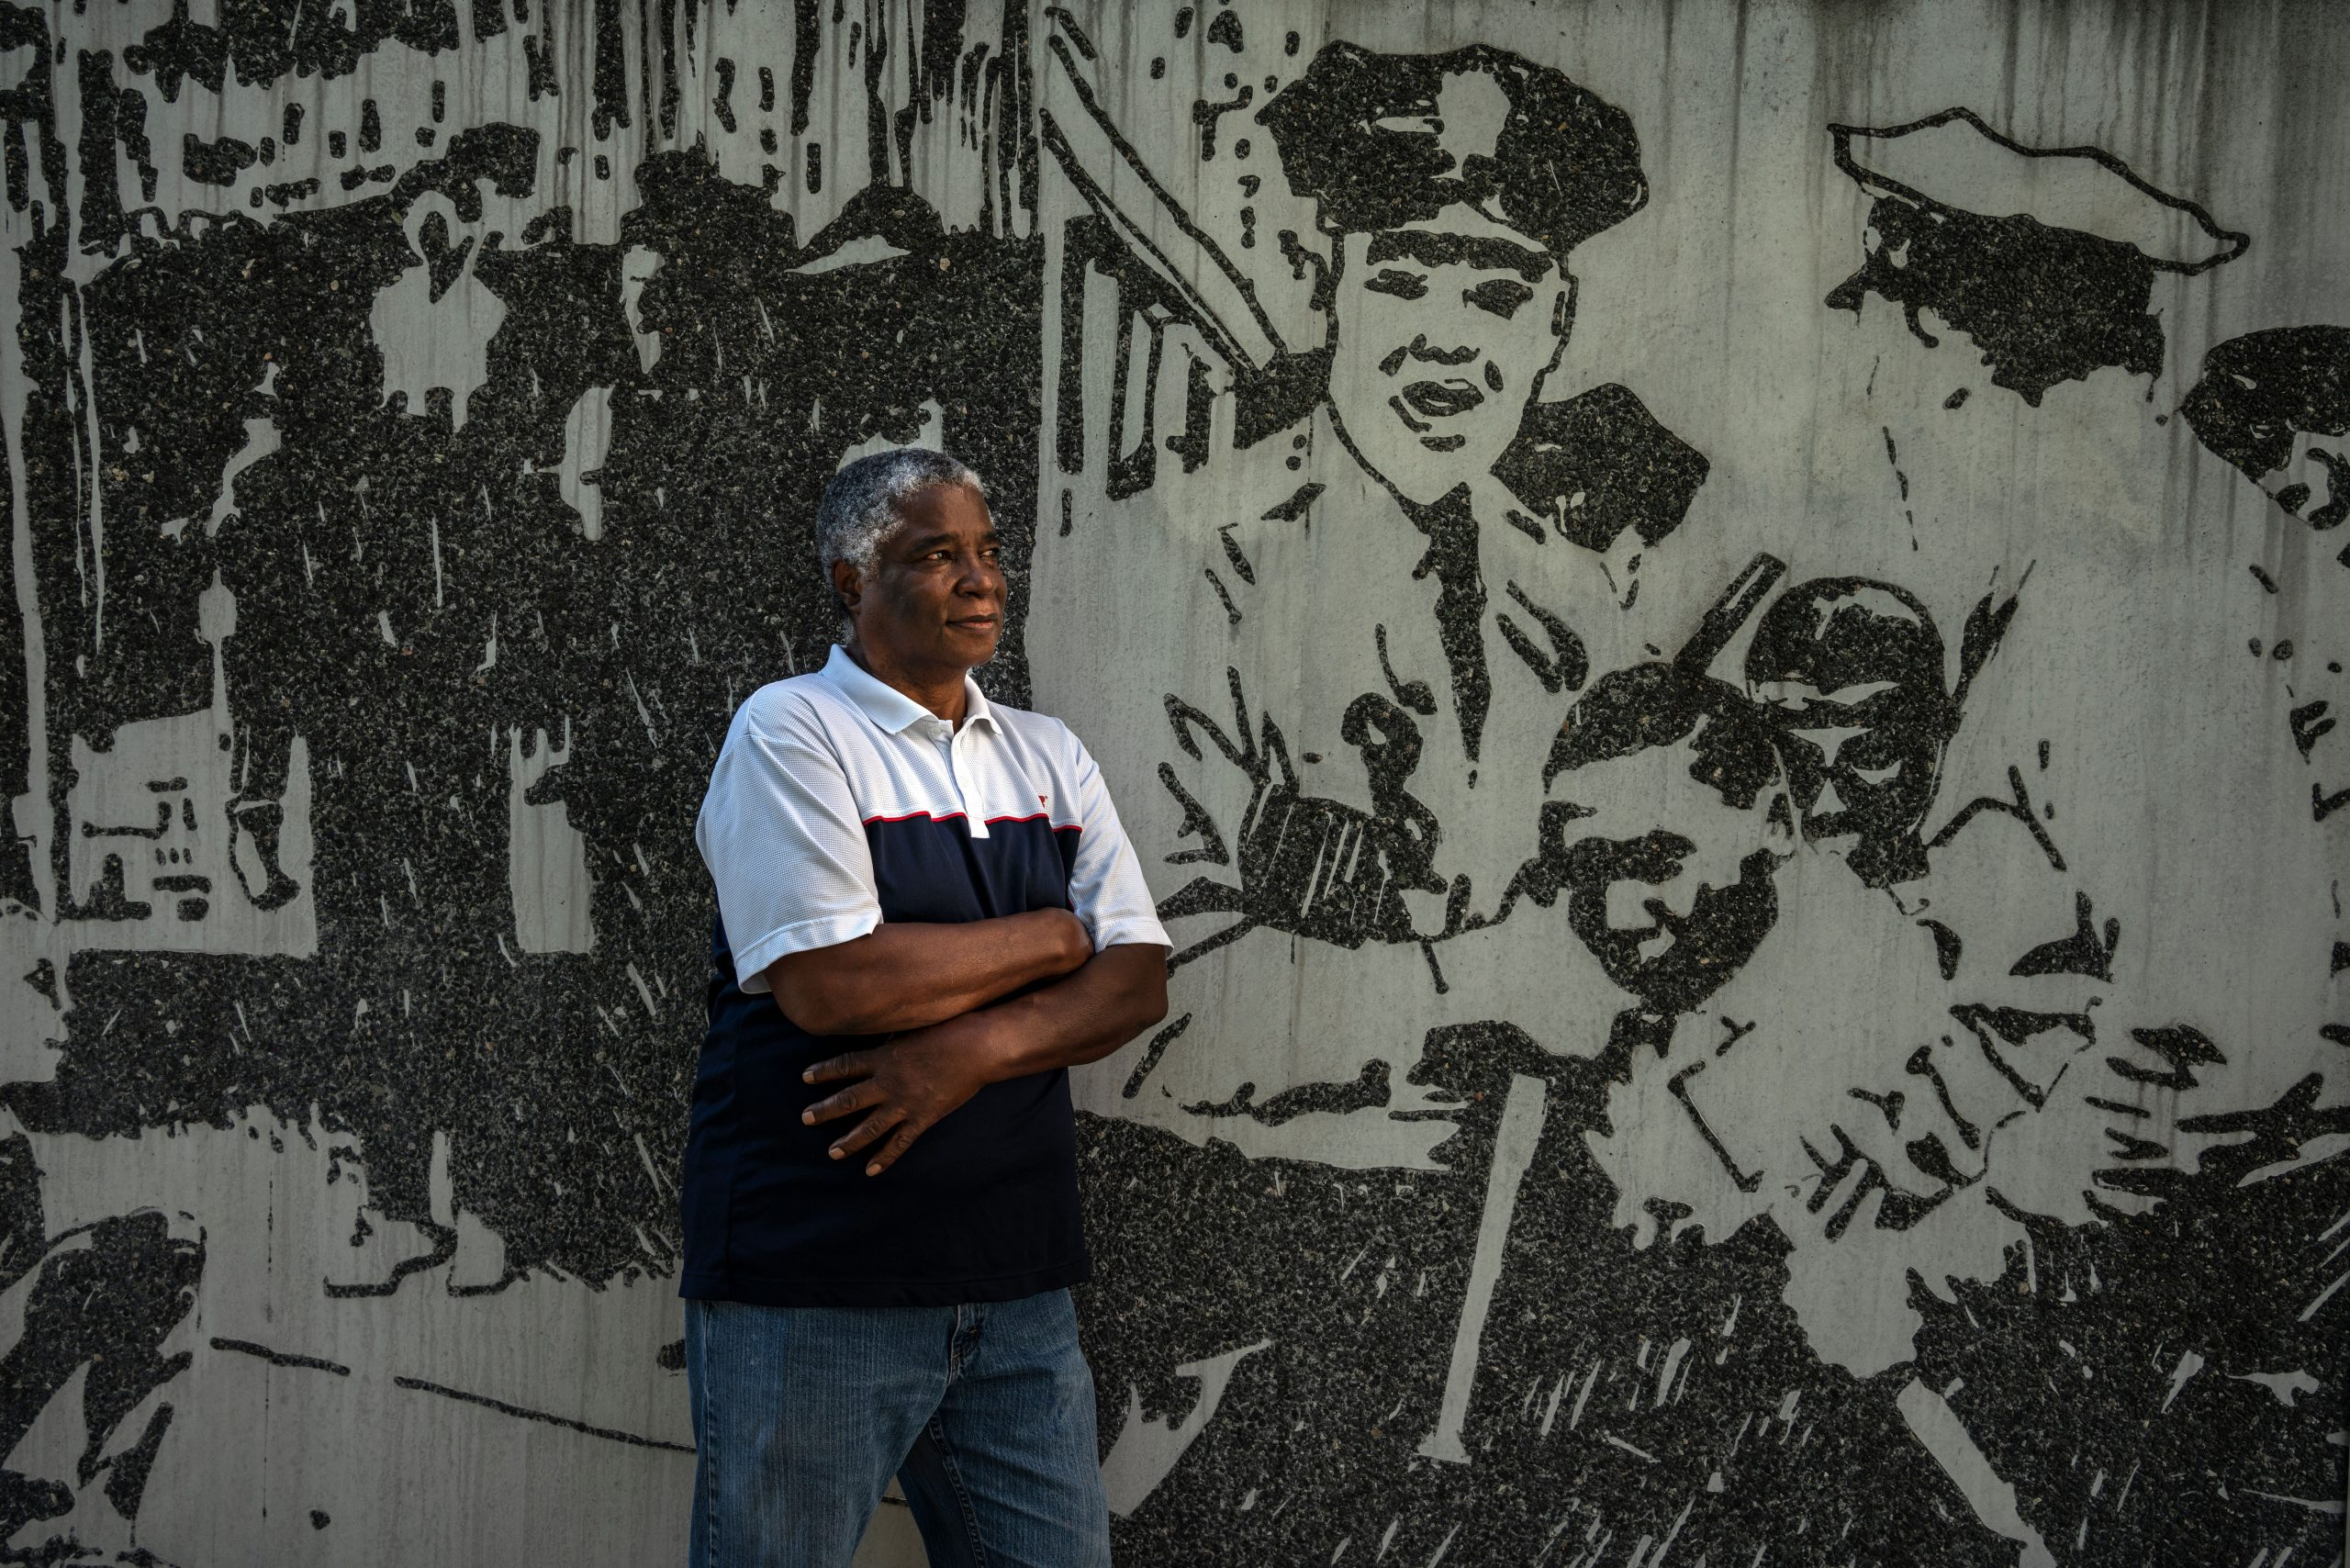 Frederick Leonard stands in front of the Civil Rights mural at the Historic Metro Courthouse. (Photo: John Partipilo)